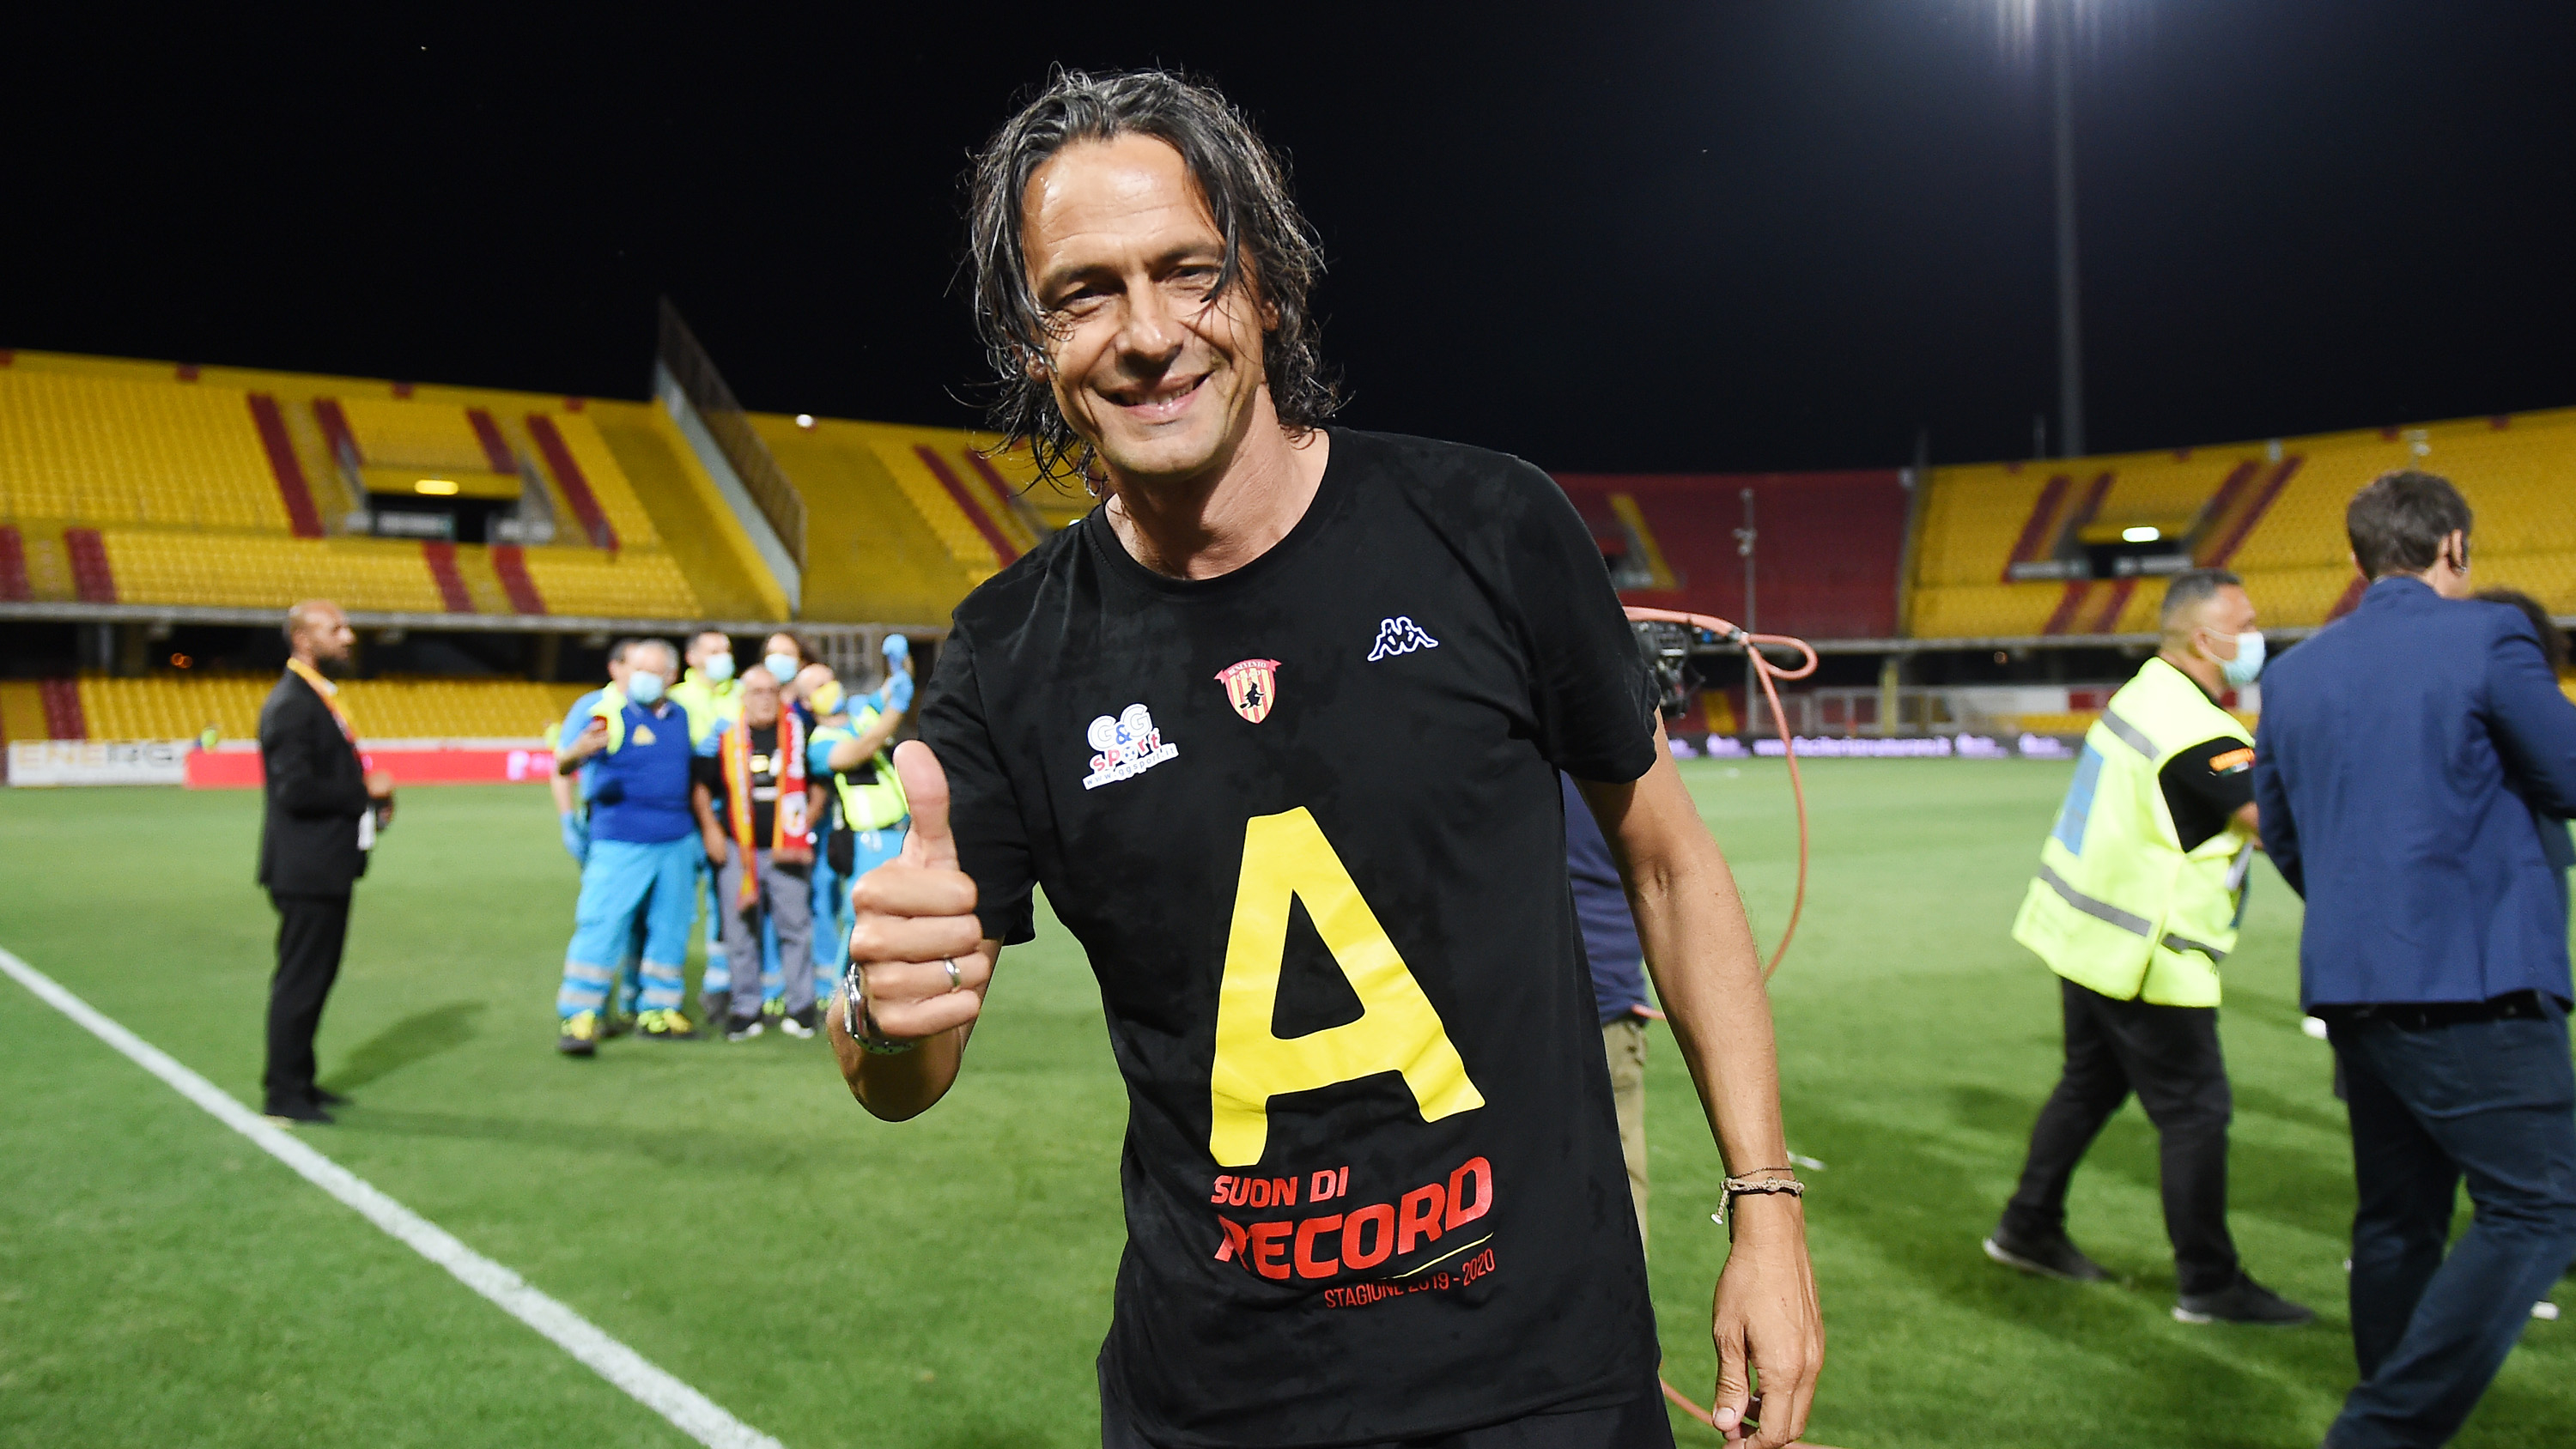 Filippo Inzaghi leads Benevento back to Serie A | Goal.com